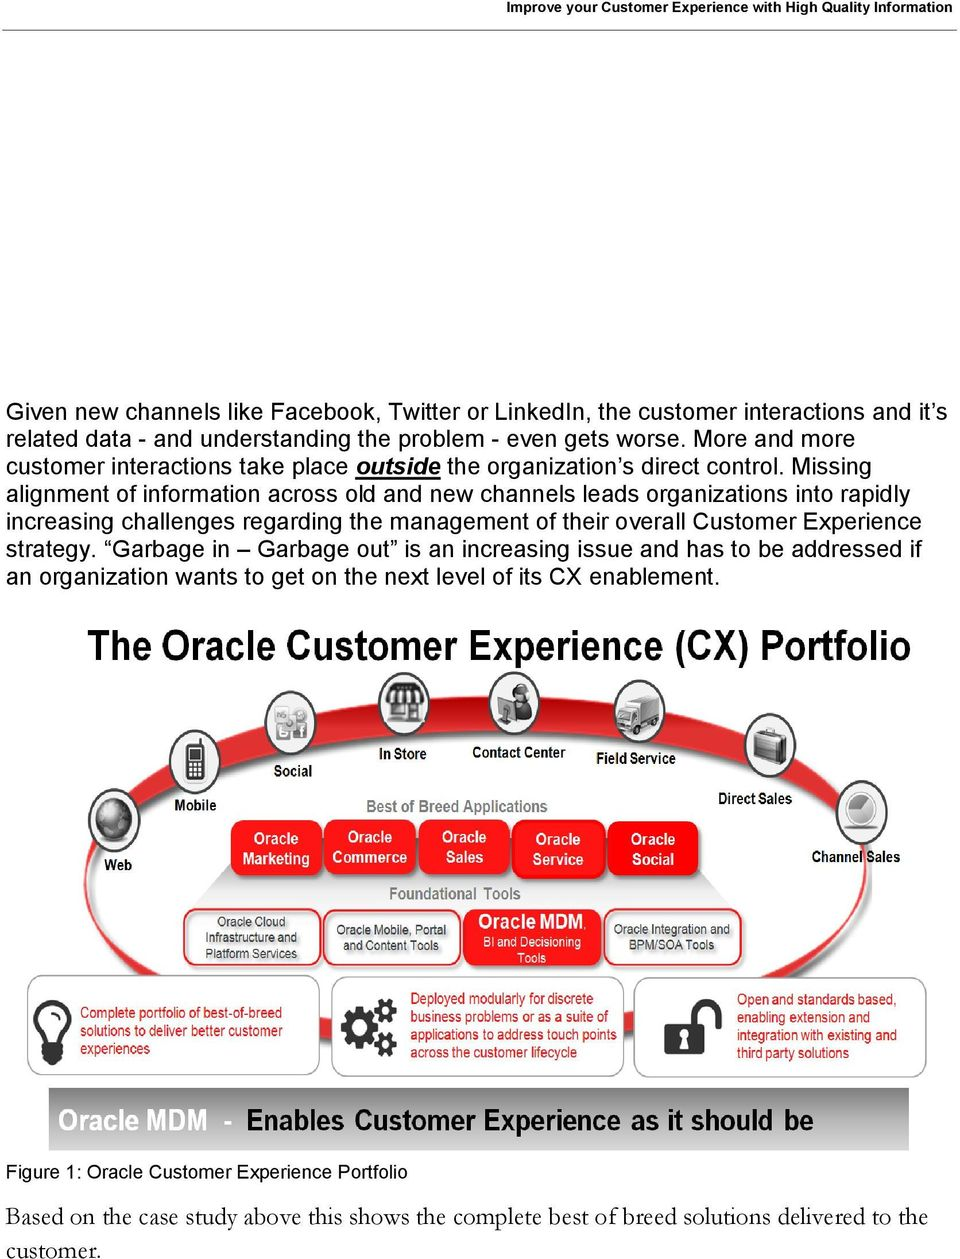 Missing alignment of information across old and new channels leads organizations into rapidly increasing challenges regarding the management of their overall Customer Experience